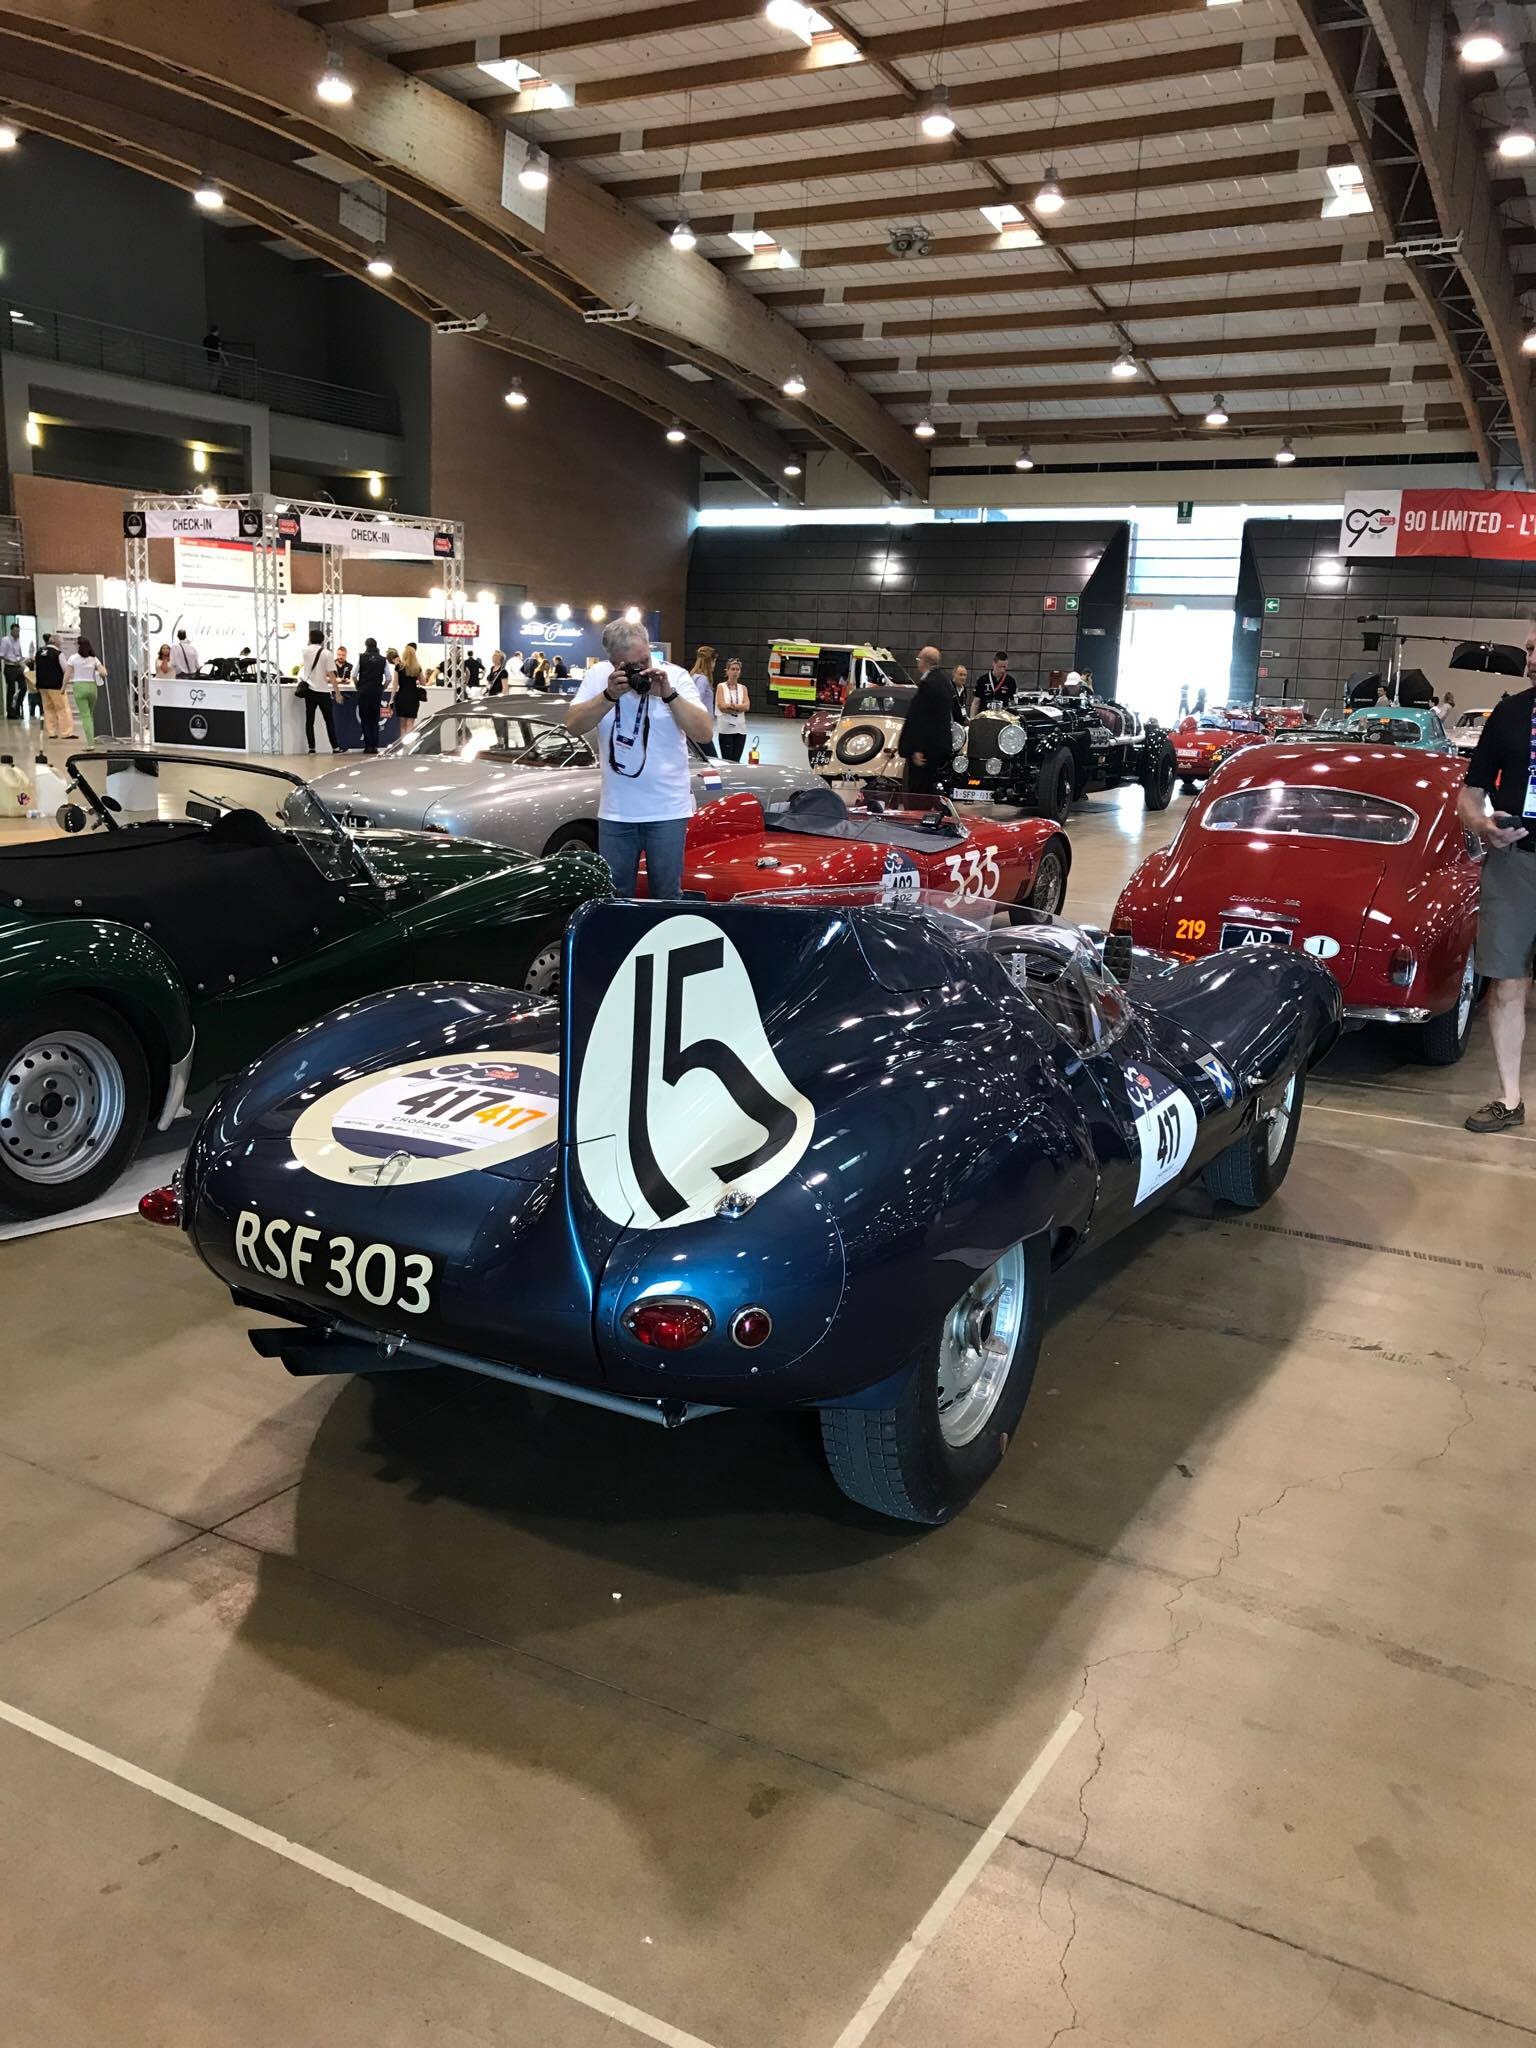 mille miglia - photo #18